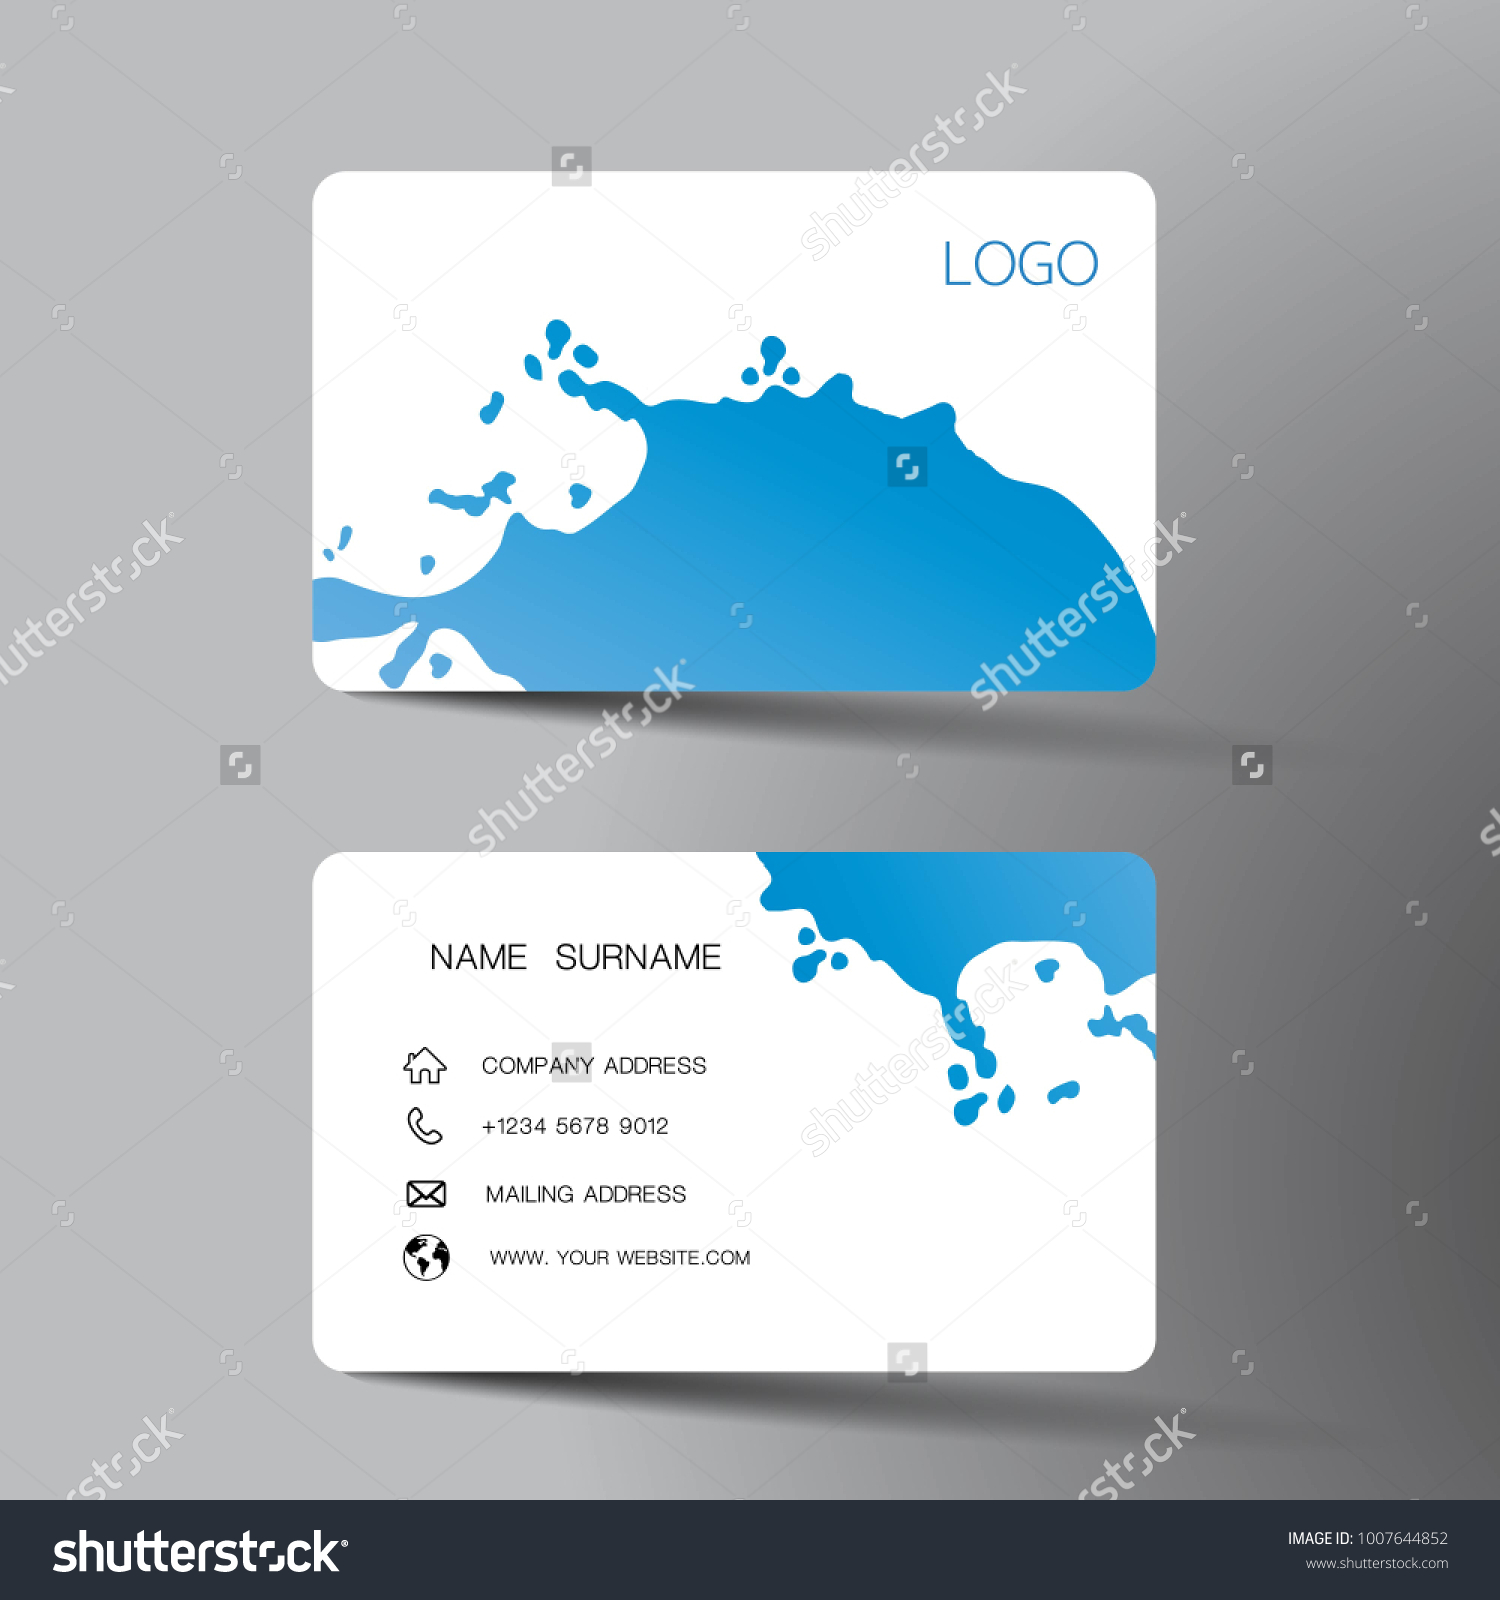 Blue White Business Card Template Design Stock Vector Royalty Free